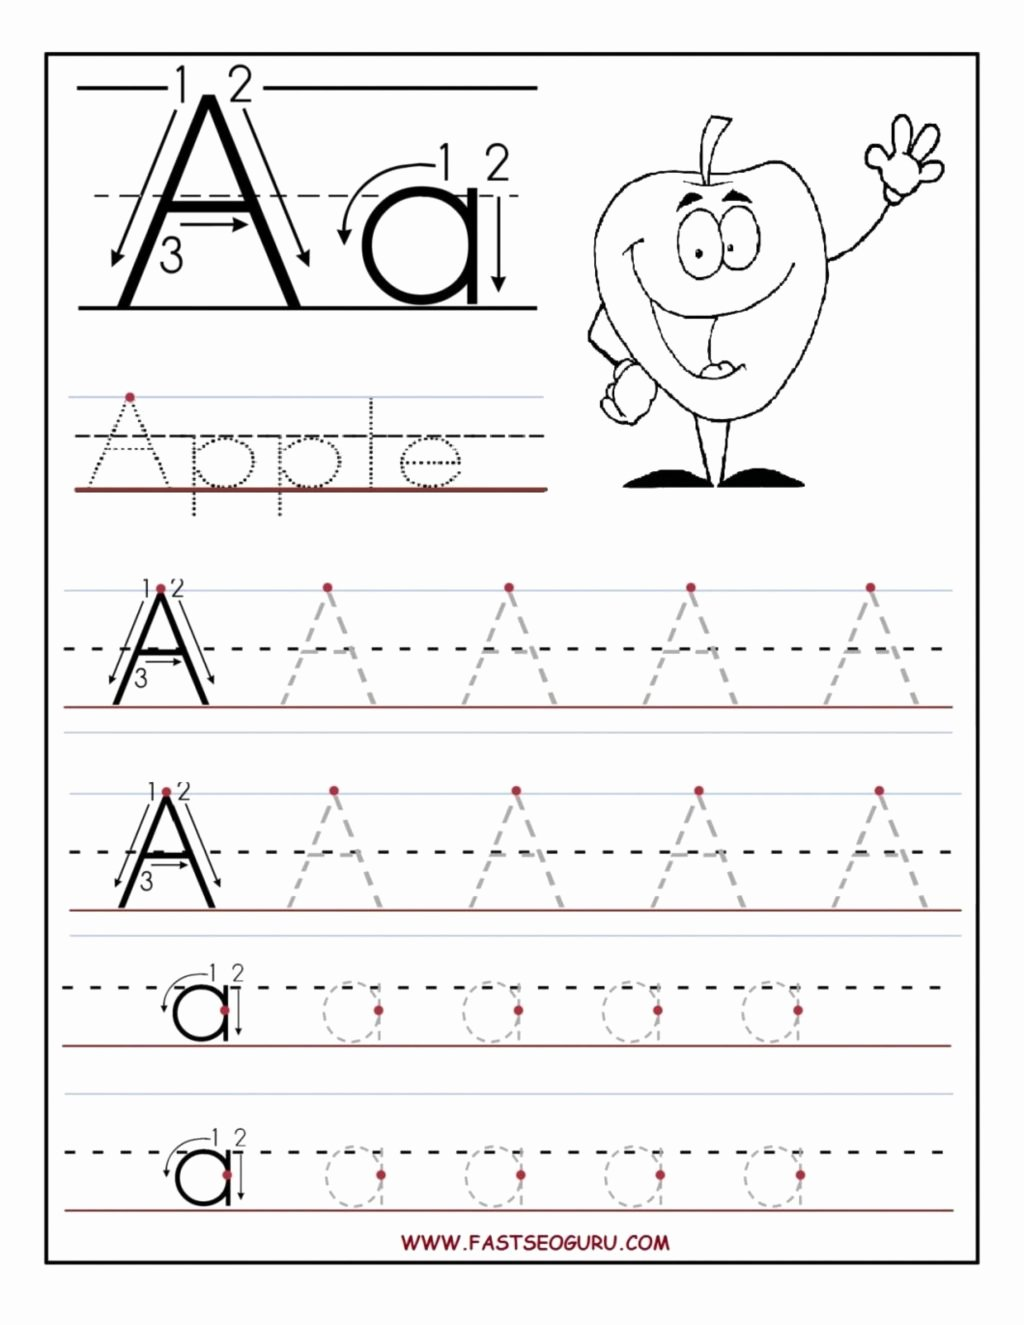 Free Alphabet Tracing Worksheets for Preschoolers Fresh Worksheet Worksheet Trace Letters Tracing Worksheets for